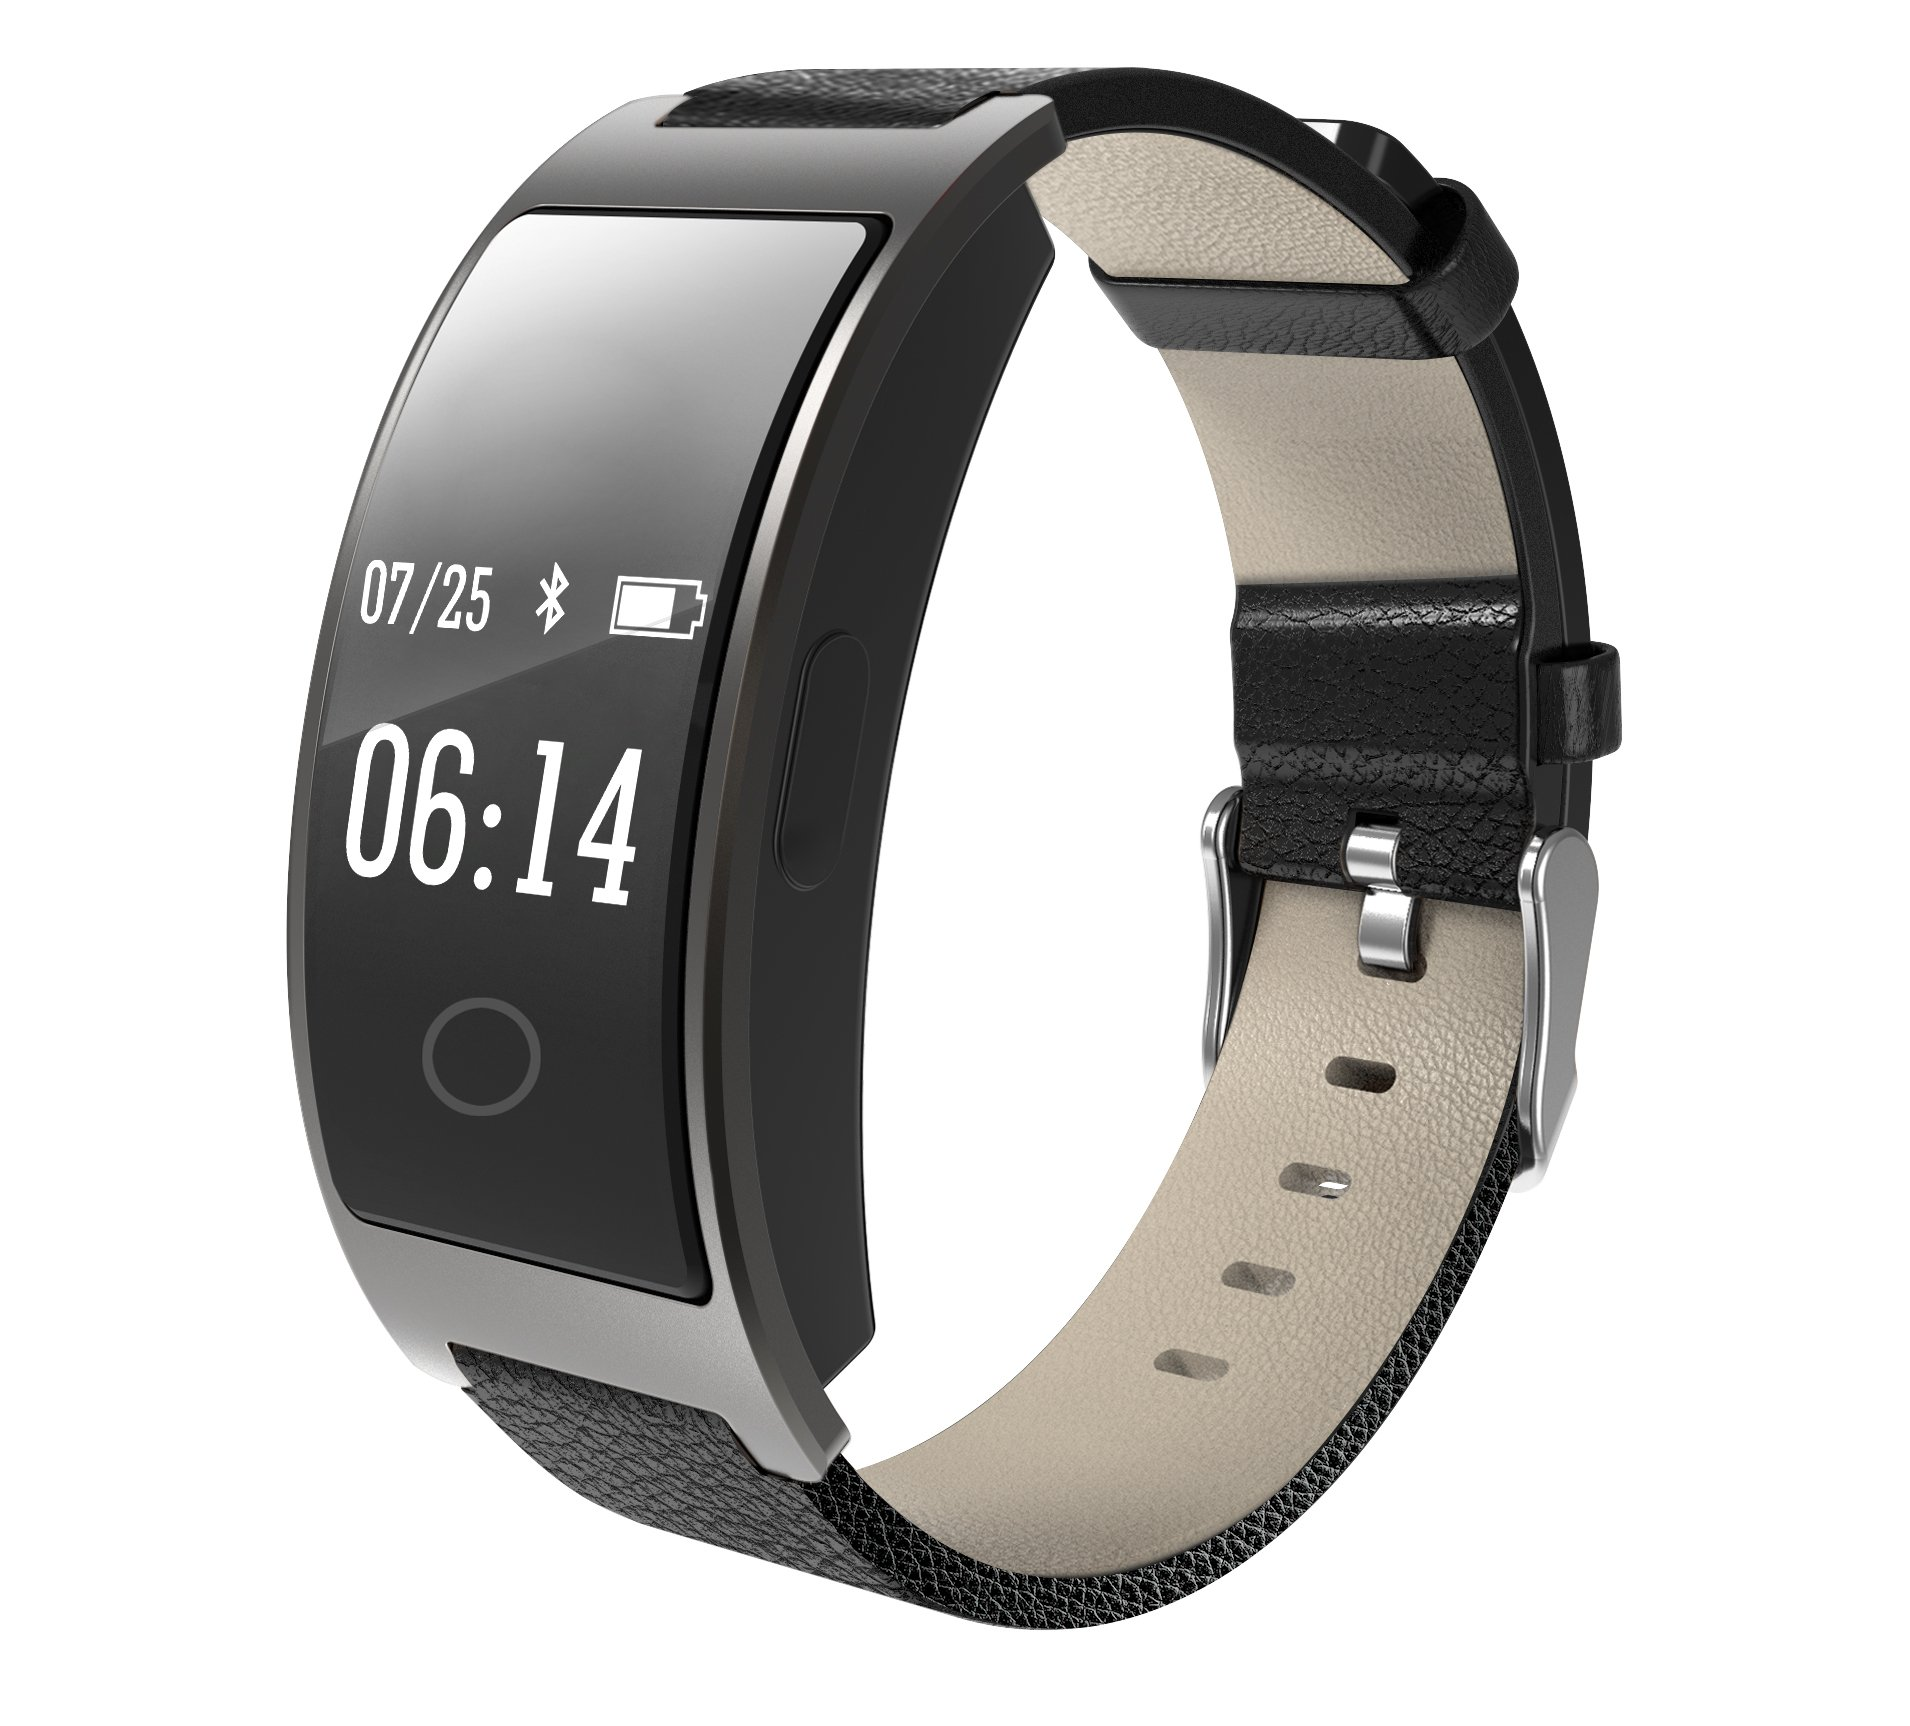 Hangang Smart bracelet CK11s Smart bluetooth watch band Sport watch IP67 waterproof blood pressure heart rate monitor step reminder for ios Android (black)